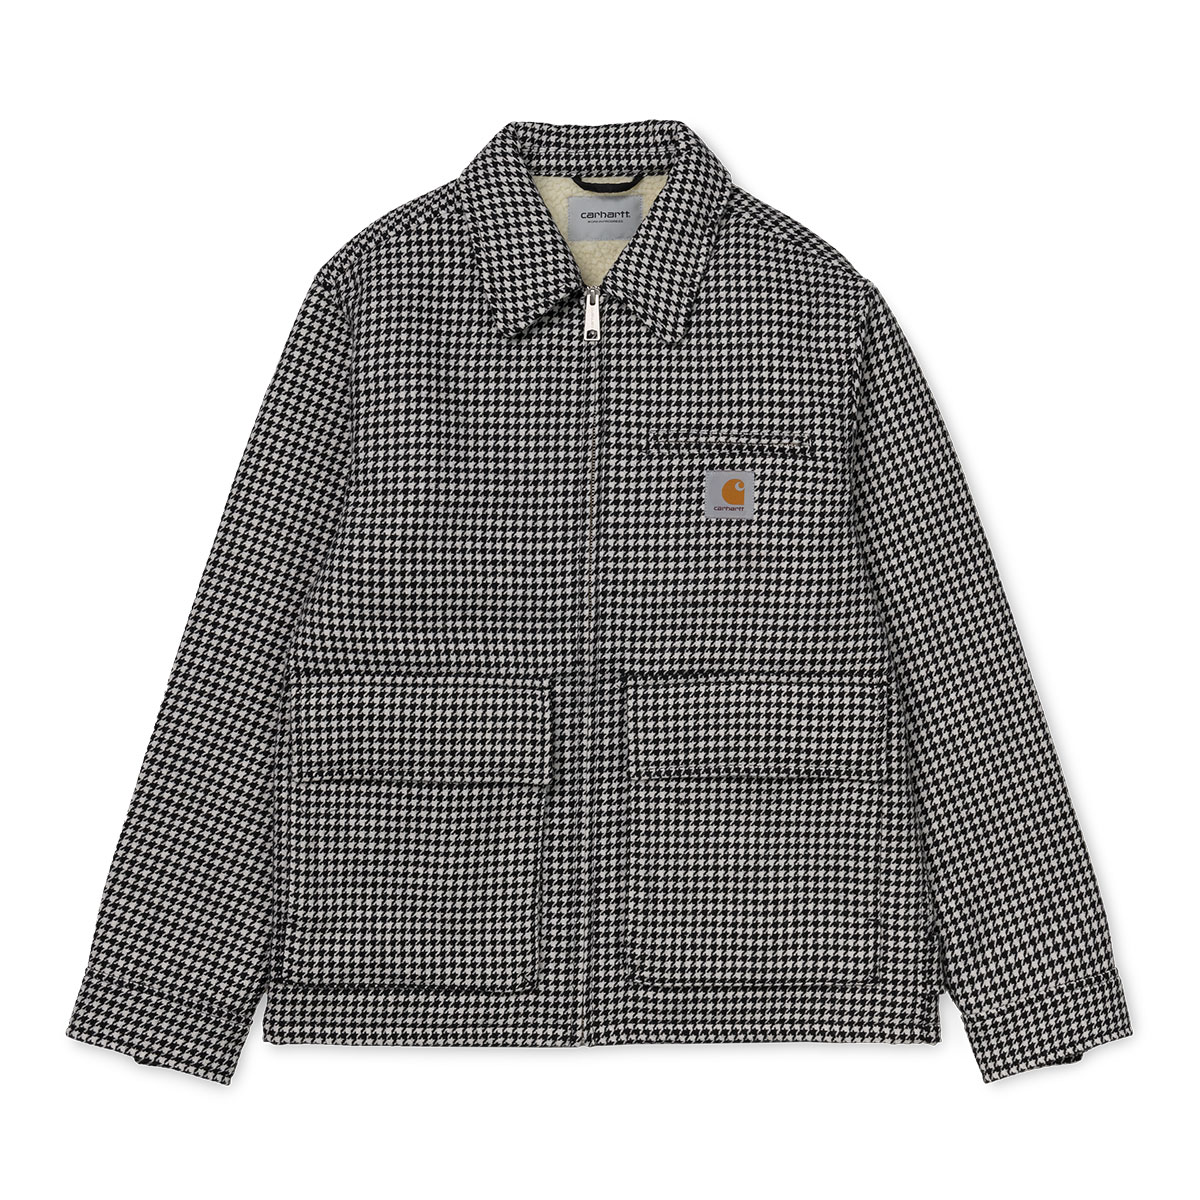 Carhartt Ryder Check Jacket